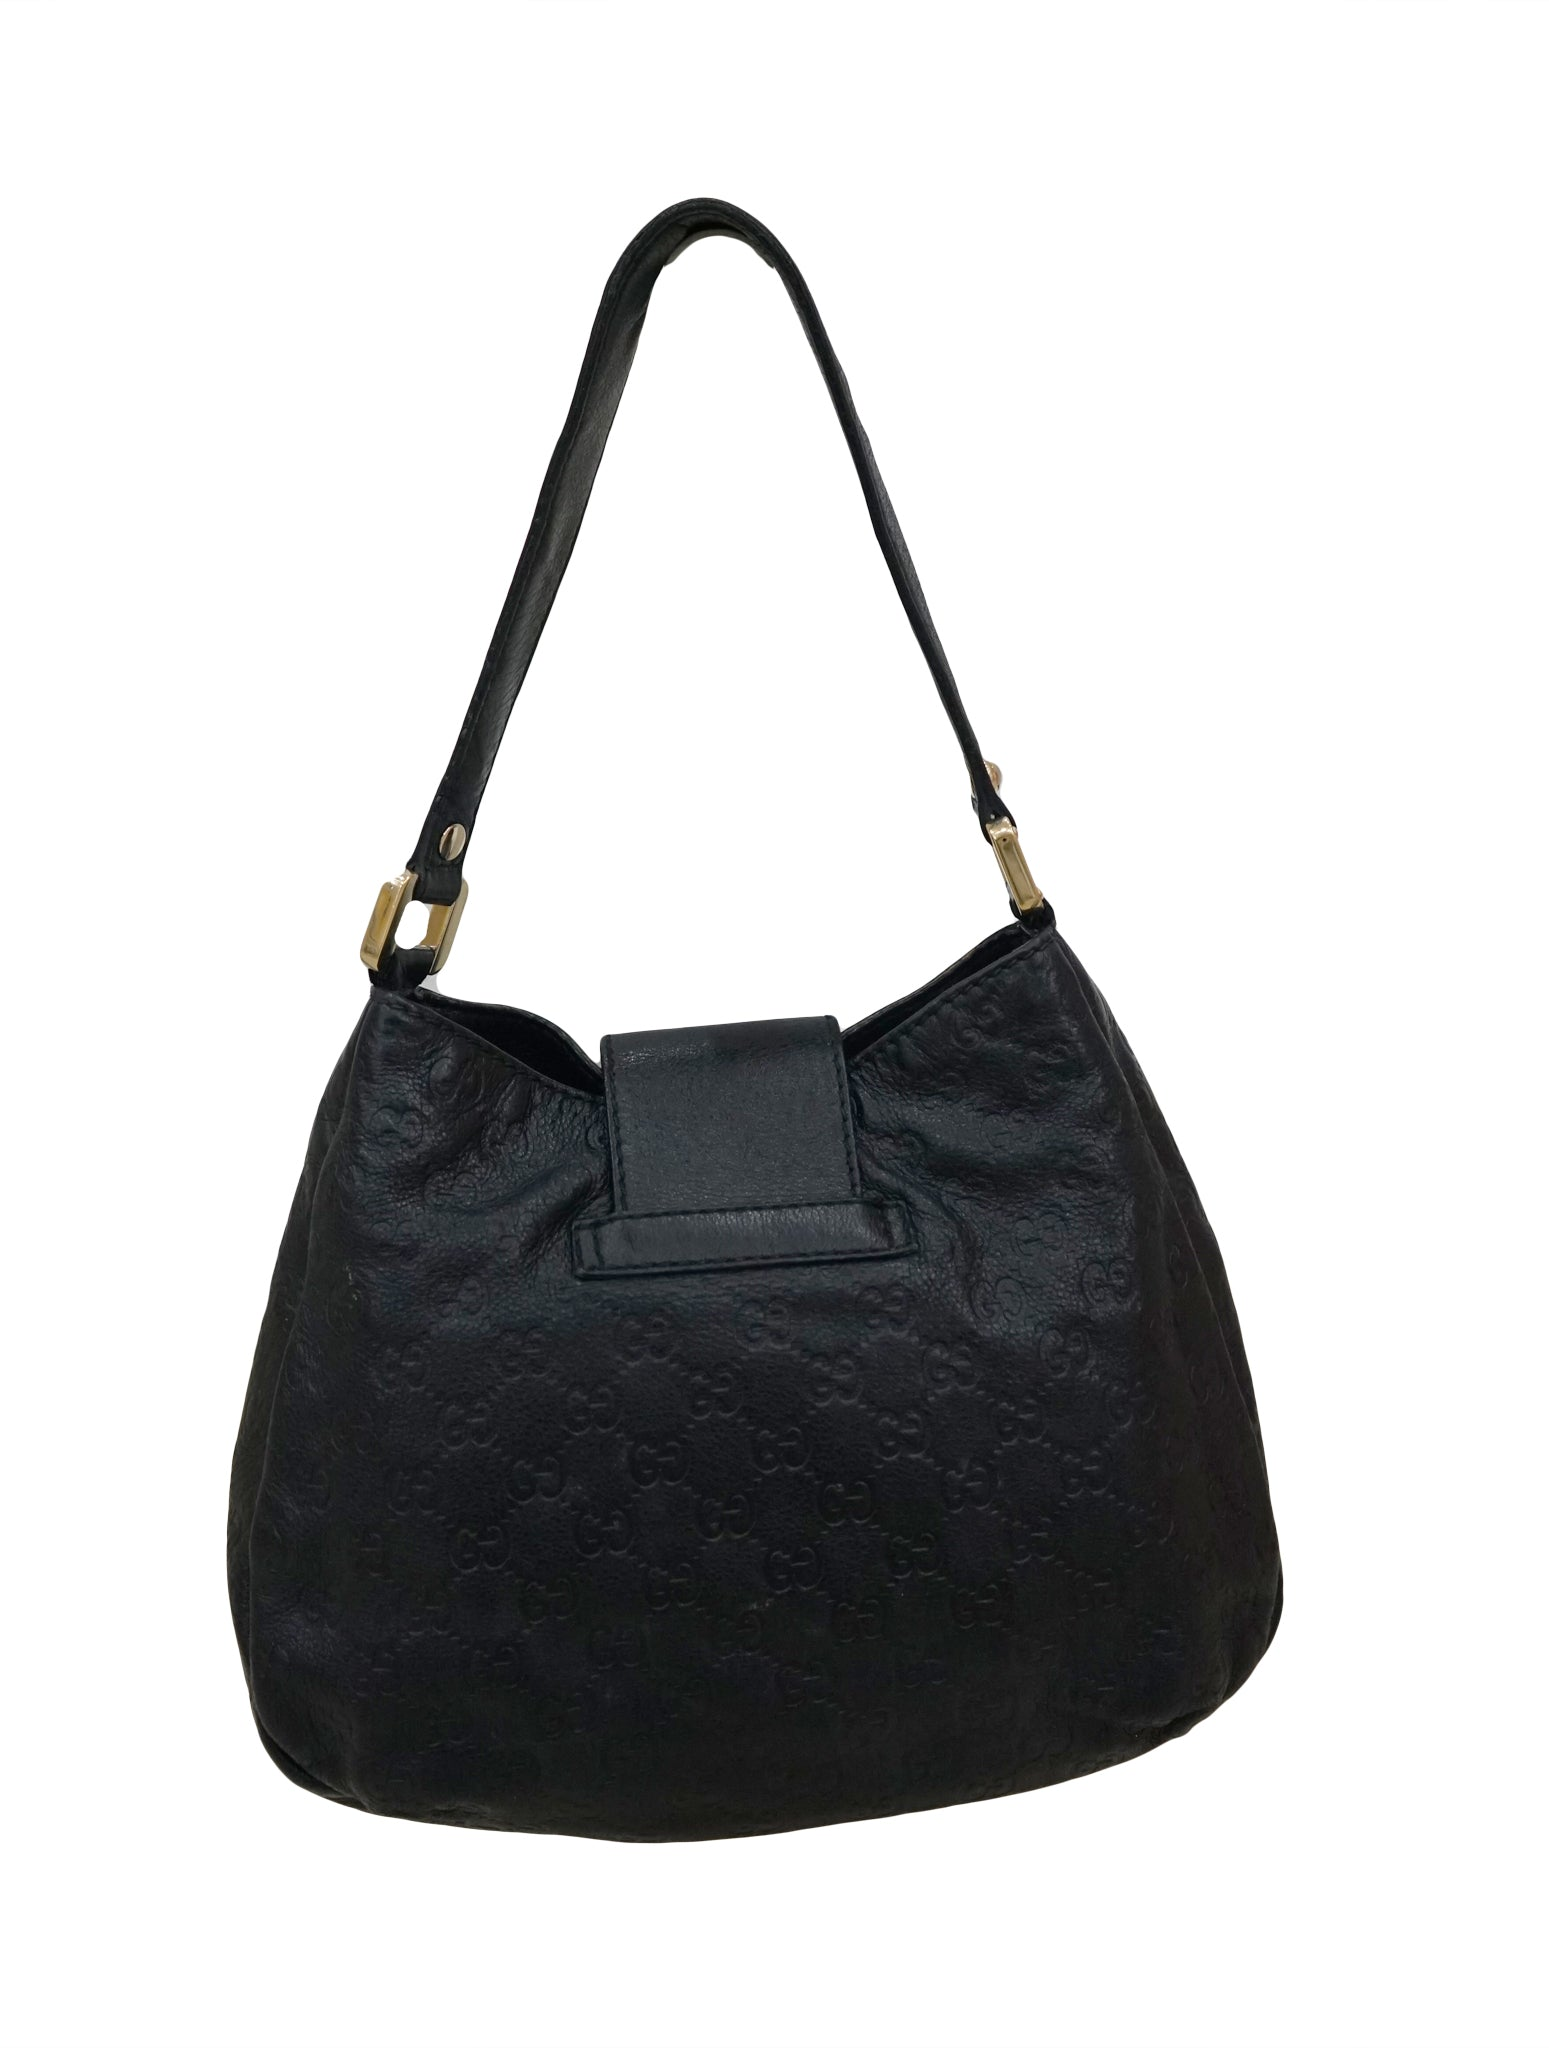 GUCCISSIMA LEATHER VINTAGE WEB HOBO